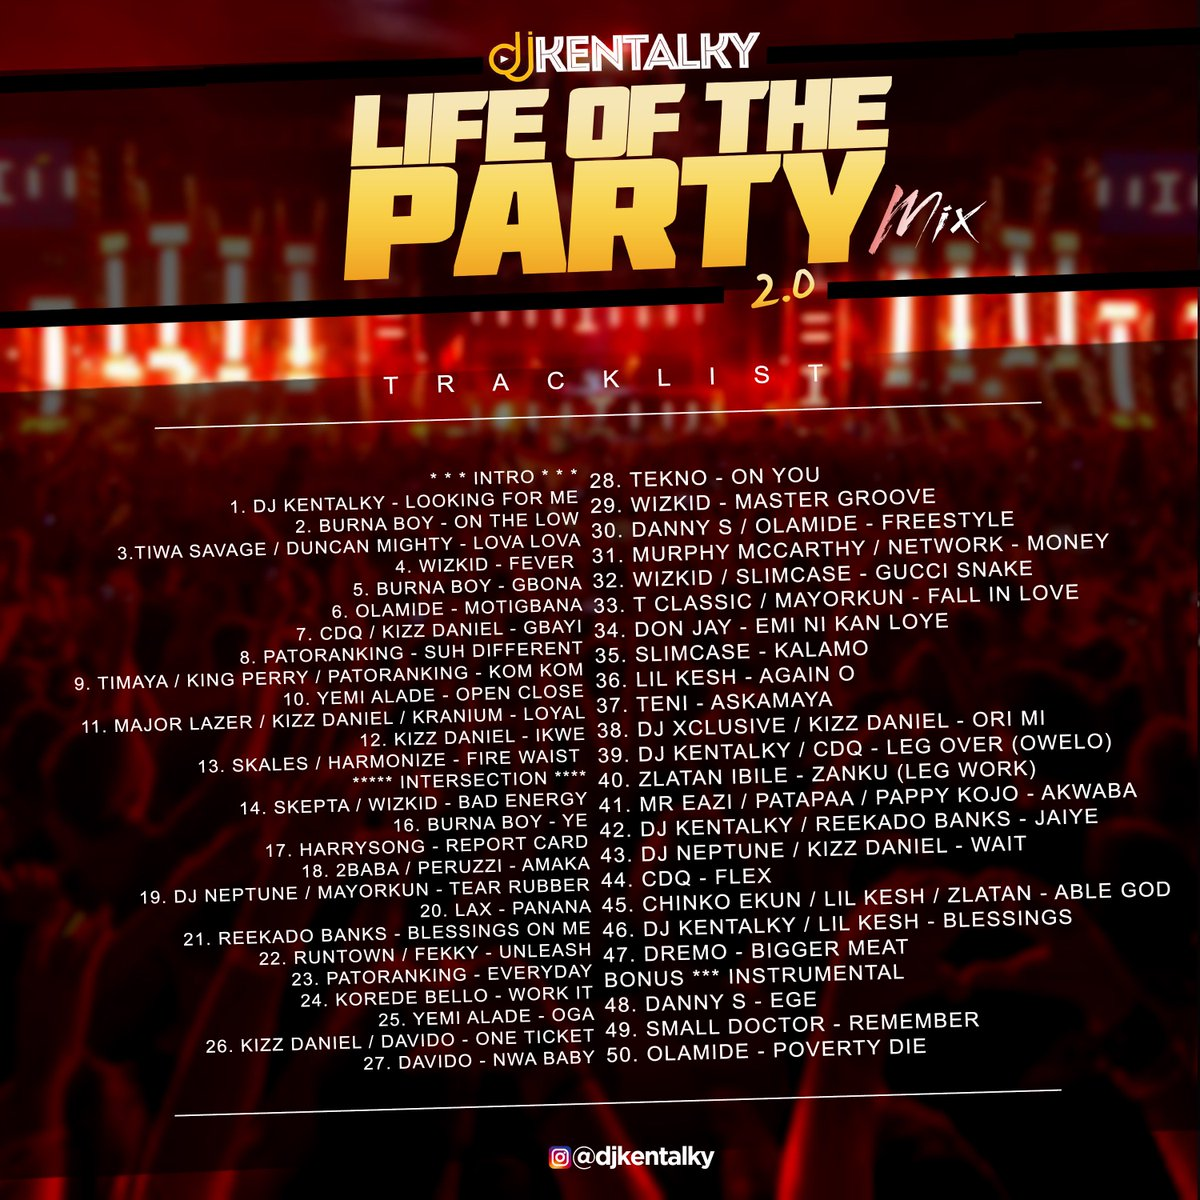 Life Of The Party ! on Twitter: